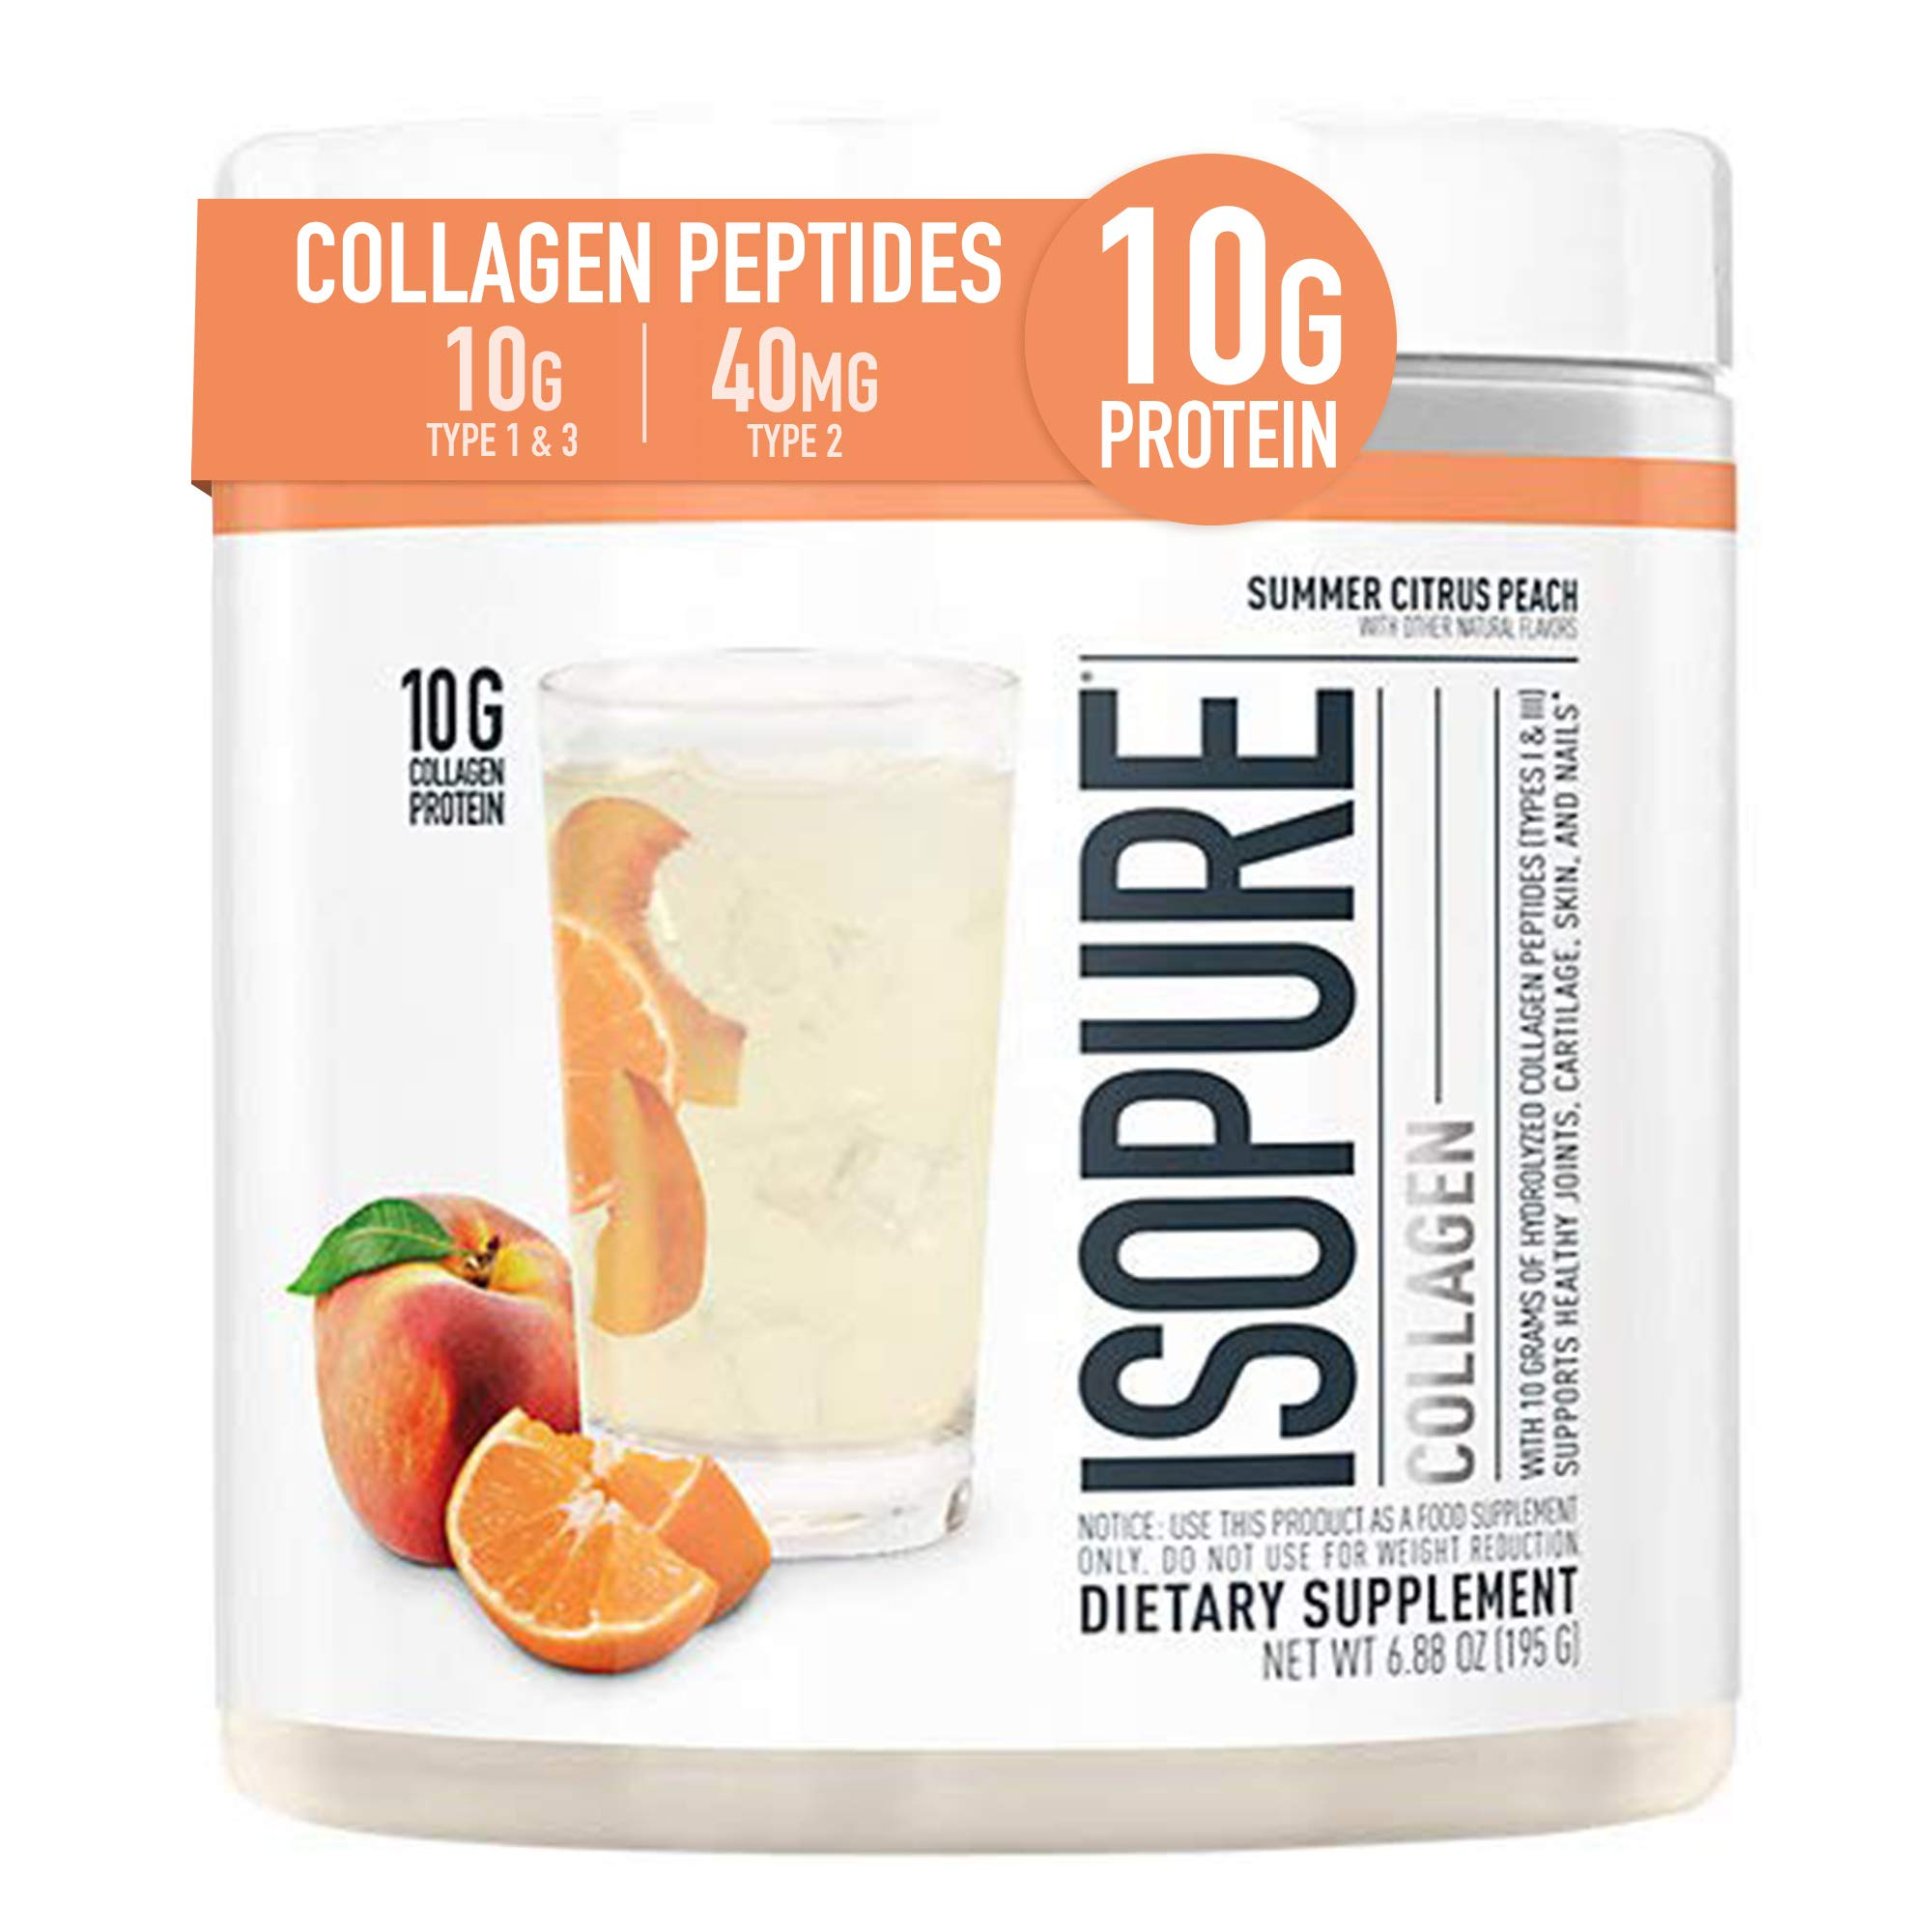 Isopure Multi Collagen Peptides Protein Powder, Vitamin C for Immune Support, Type 1, 2 & 3, Keto Friendly, for Recovery Support, Joints, Cartilage, Skin & Nails - Gluten Free, Citrus Peach, 15 Serv